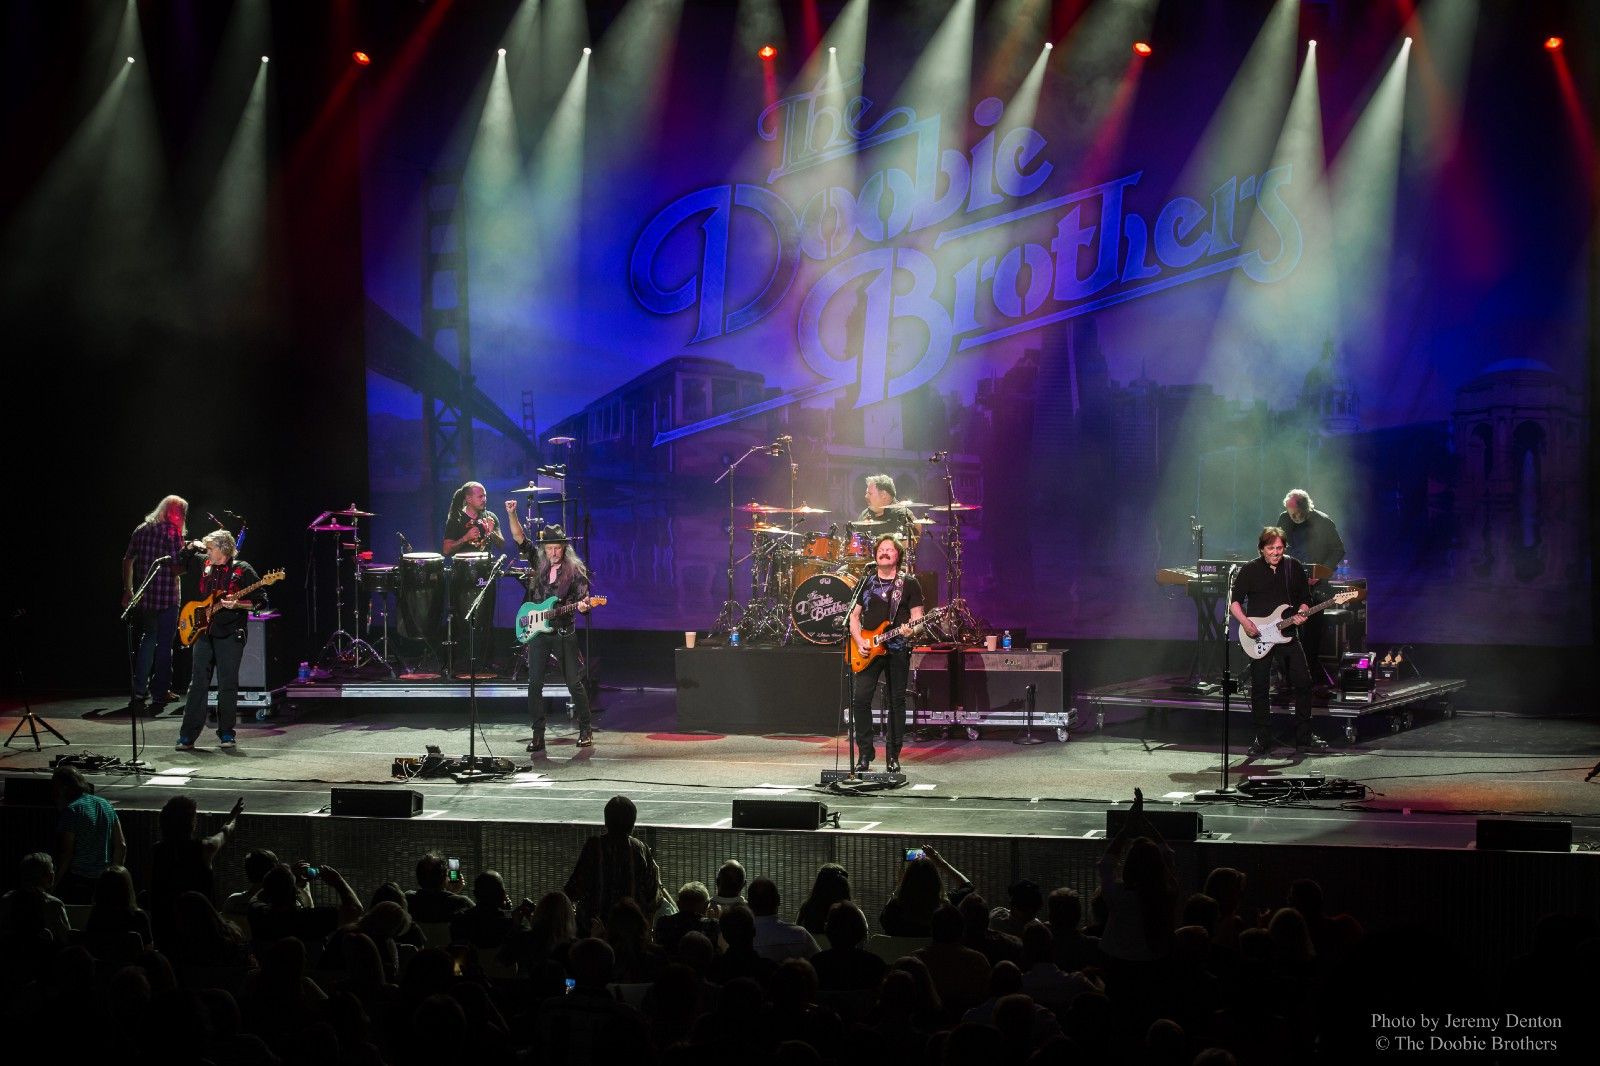 The Doobie Brothers Going Deep This Tour Wow Sold Out Opening Night